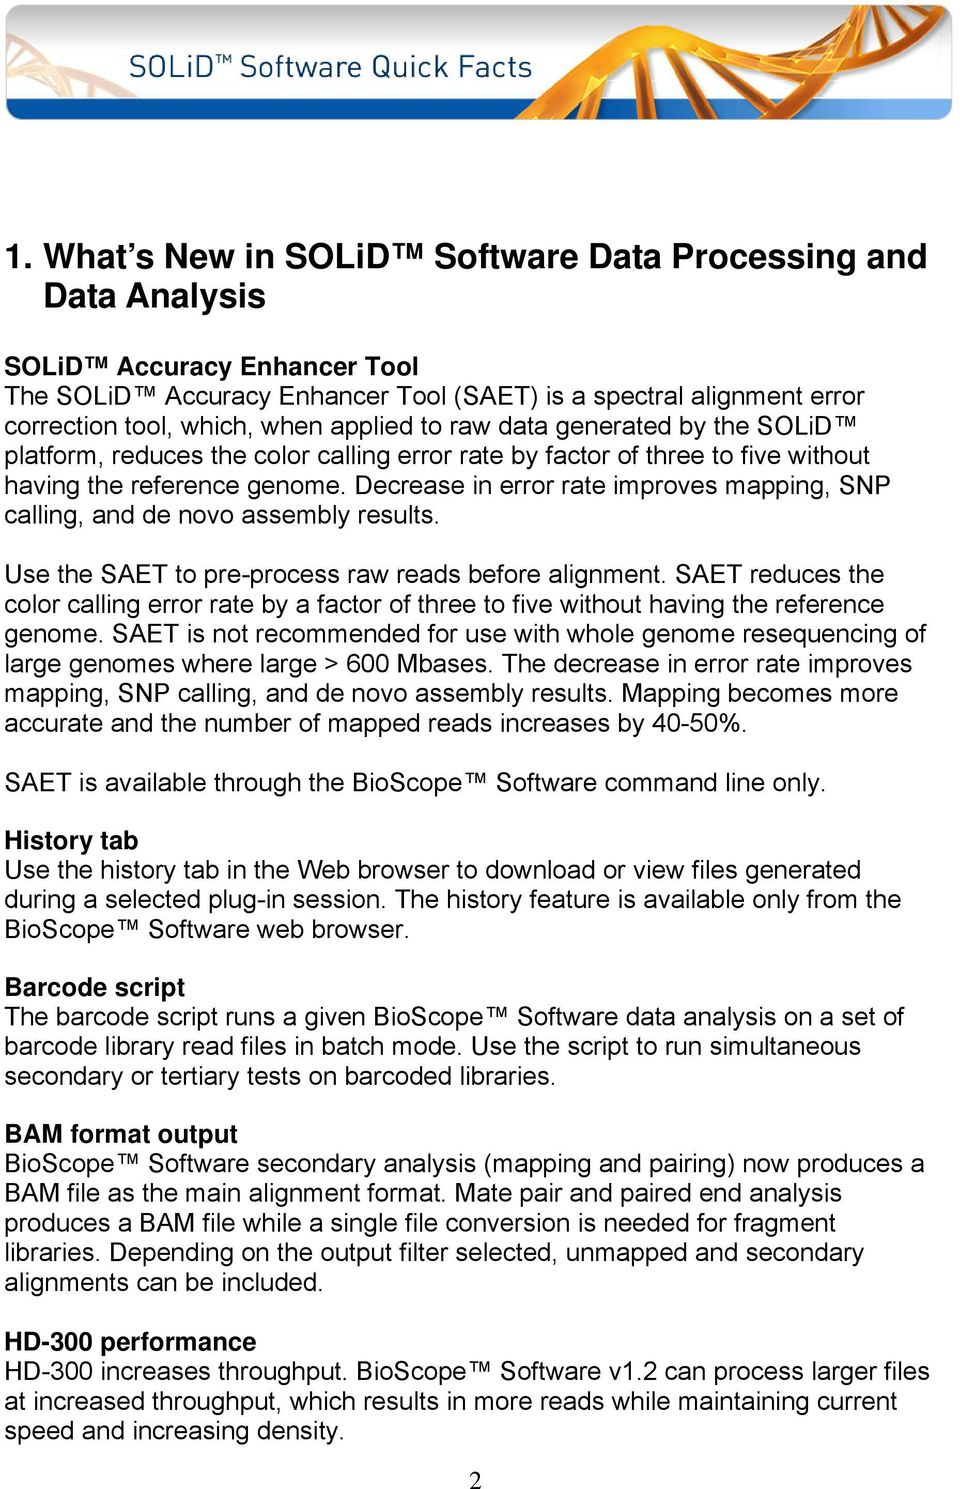 SOLiD Software Quick Facts - PDF